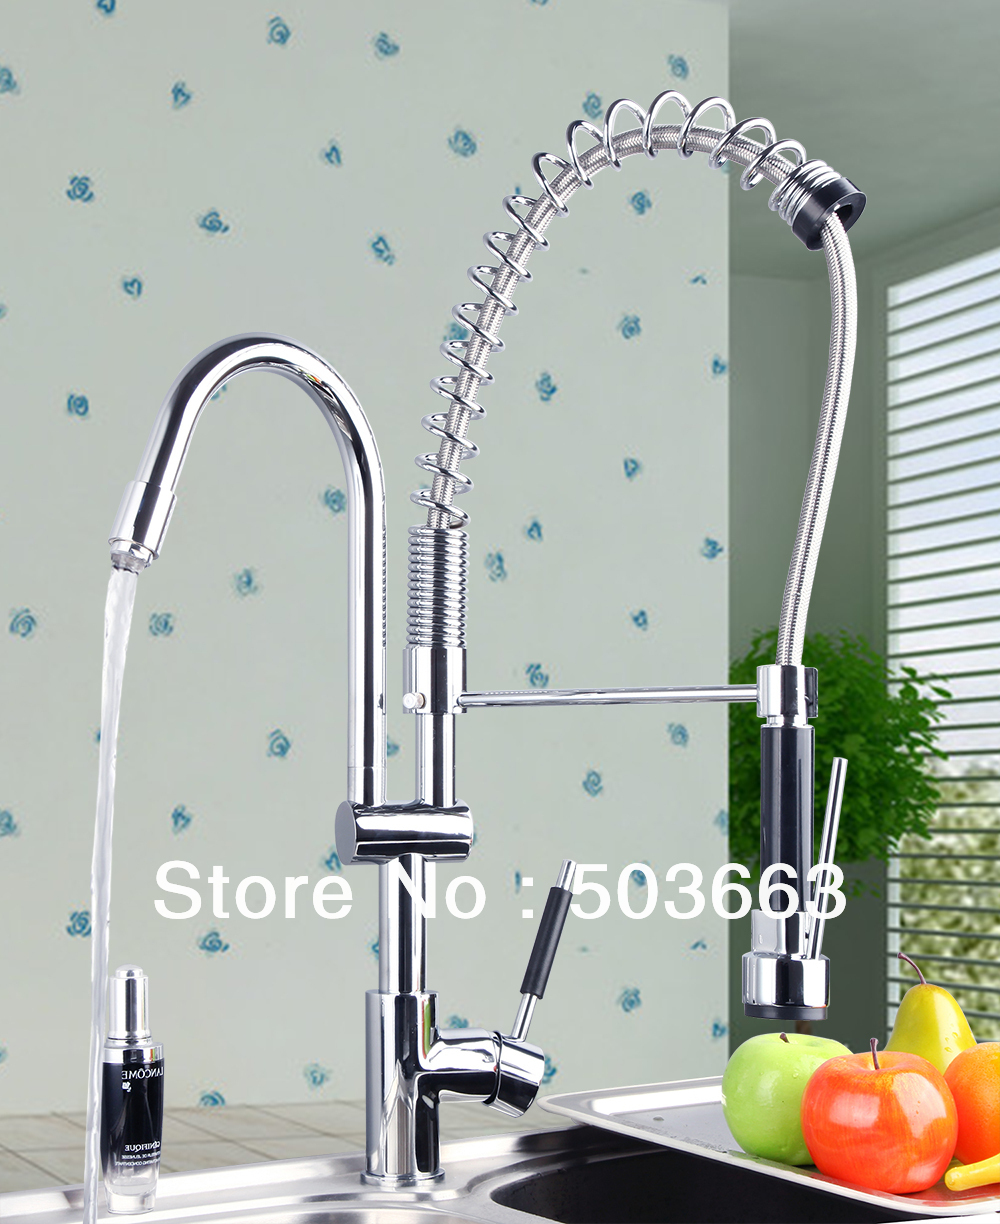 Double Handles Free Chrome Brass Water Kitchen Faucet Swivel Spout Pull Out Vessel Sink Single Handle Mixer Tap MF-268 led spout swivel spout kitchen faucet vessel sink mixer tap chrome finish solid brass free shipping hot sale